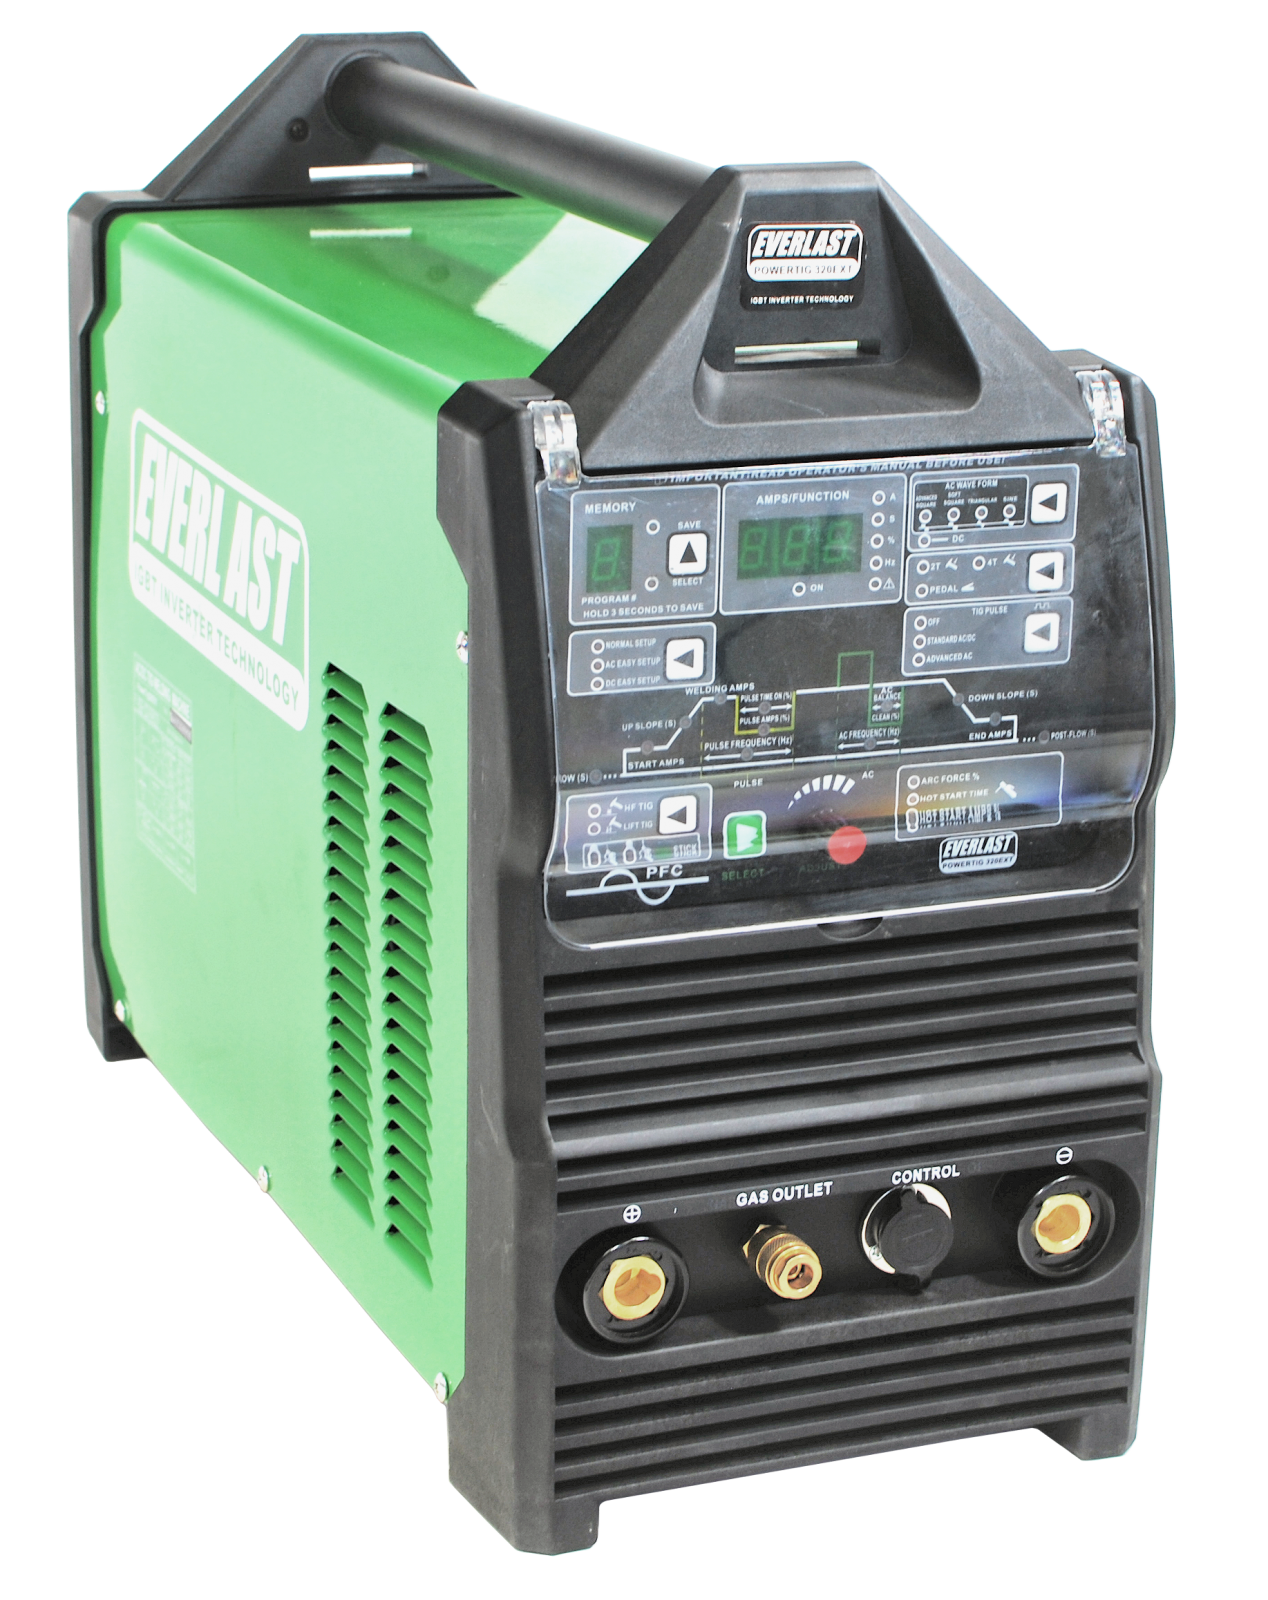 Powertig 325ext 480v 3 Phase Everlast Generators Also 220 Volt Welder To Generator Adapter On Cord Wiring